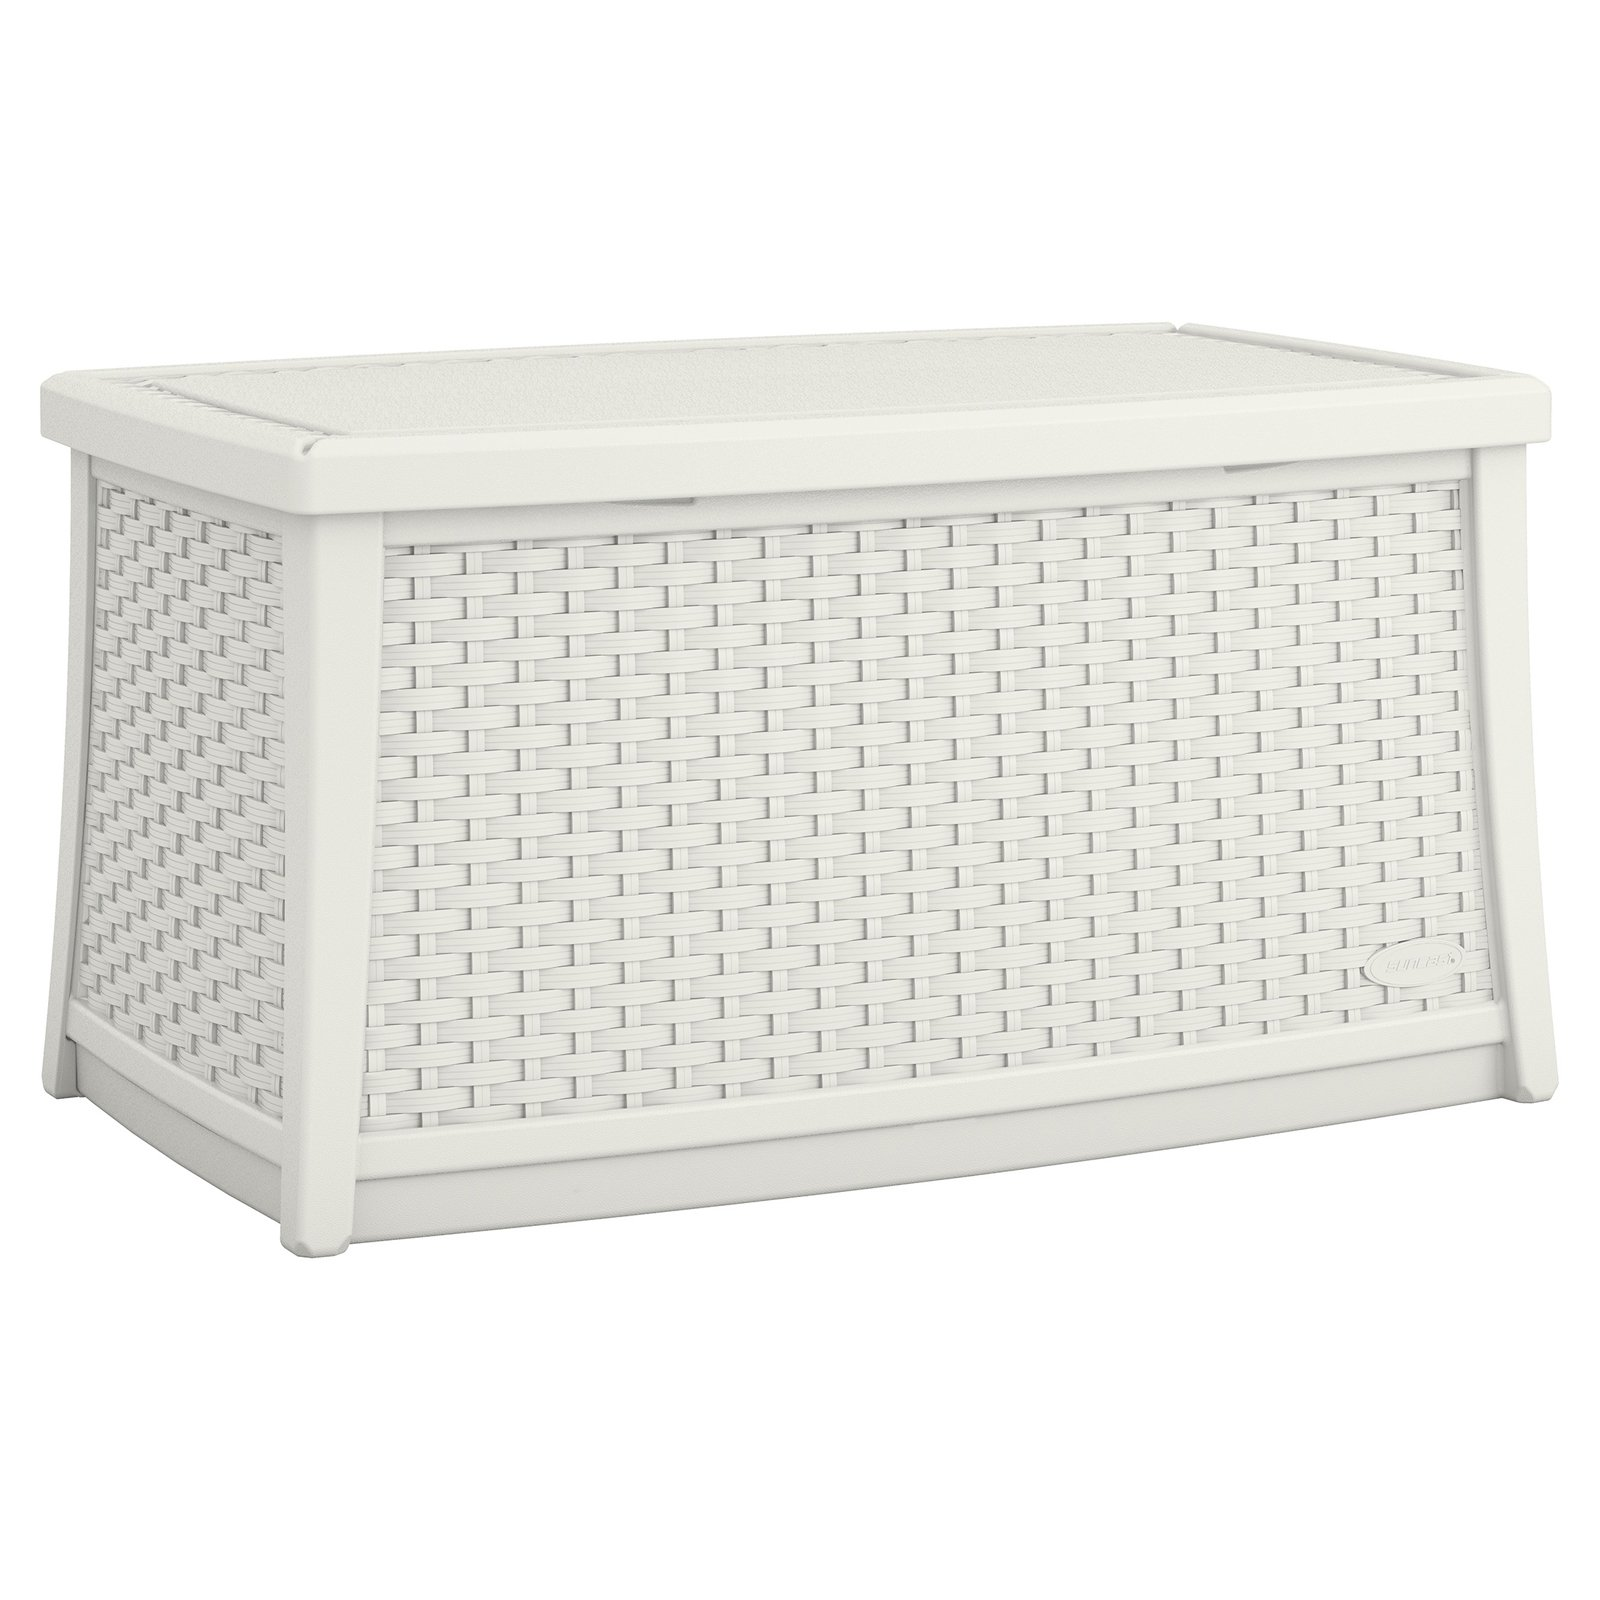 Suncast Elements Resin Patio Storage Coffee Table White Walmart